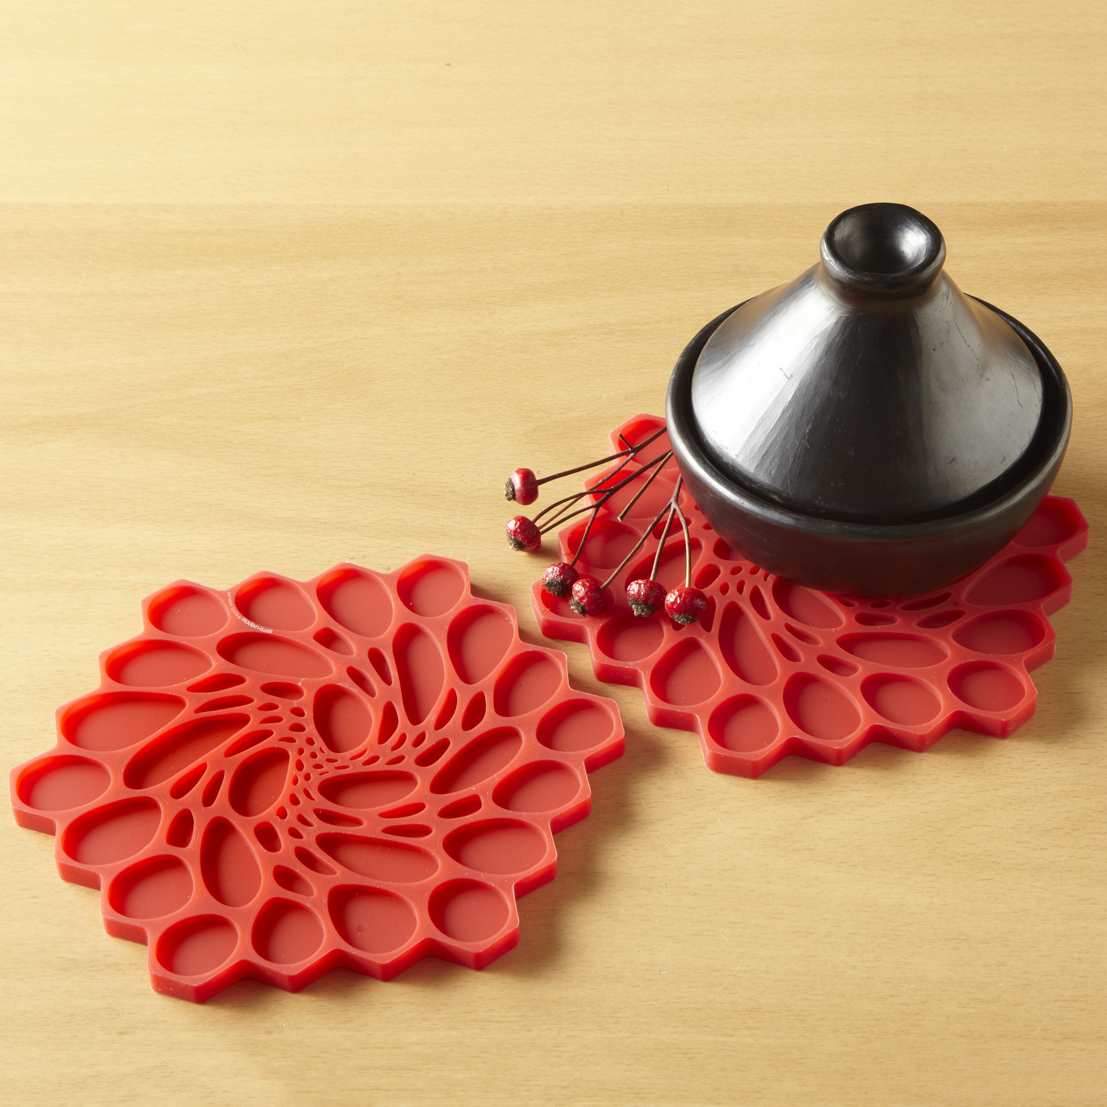 hive trivets – now for sale  nervous system blog - the overall shape is based on a hexagon so the trivets tile seamlesslybut they have a serrated edge that allows you to leave gaps and form more